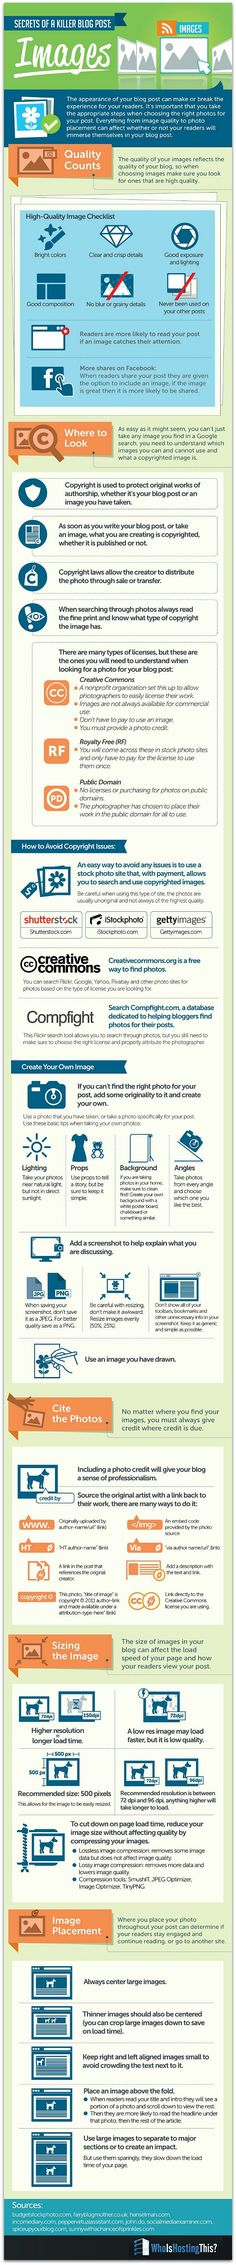 Infographic: How to avoid copyright trouble when using online images   Articles   Main